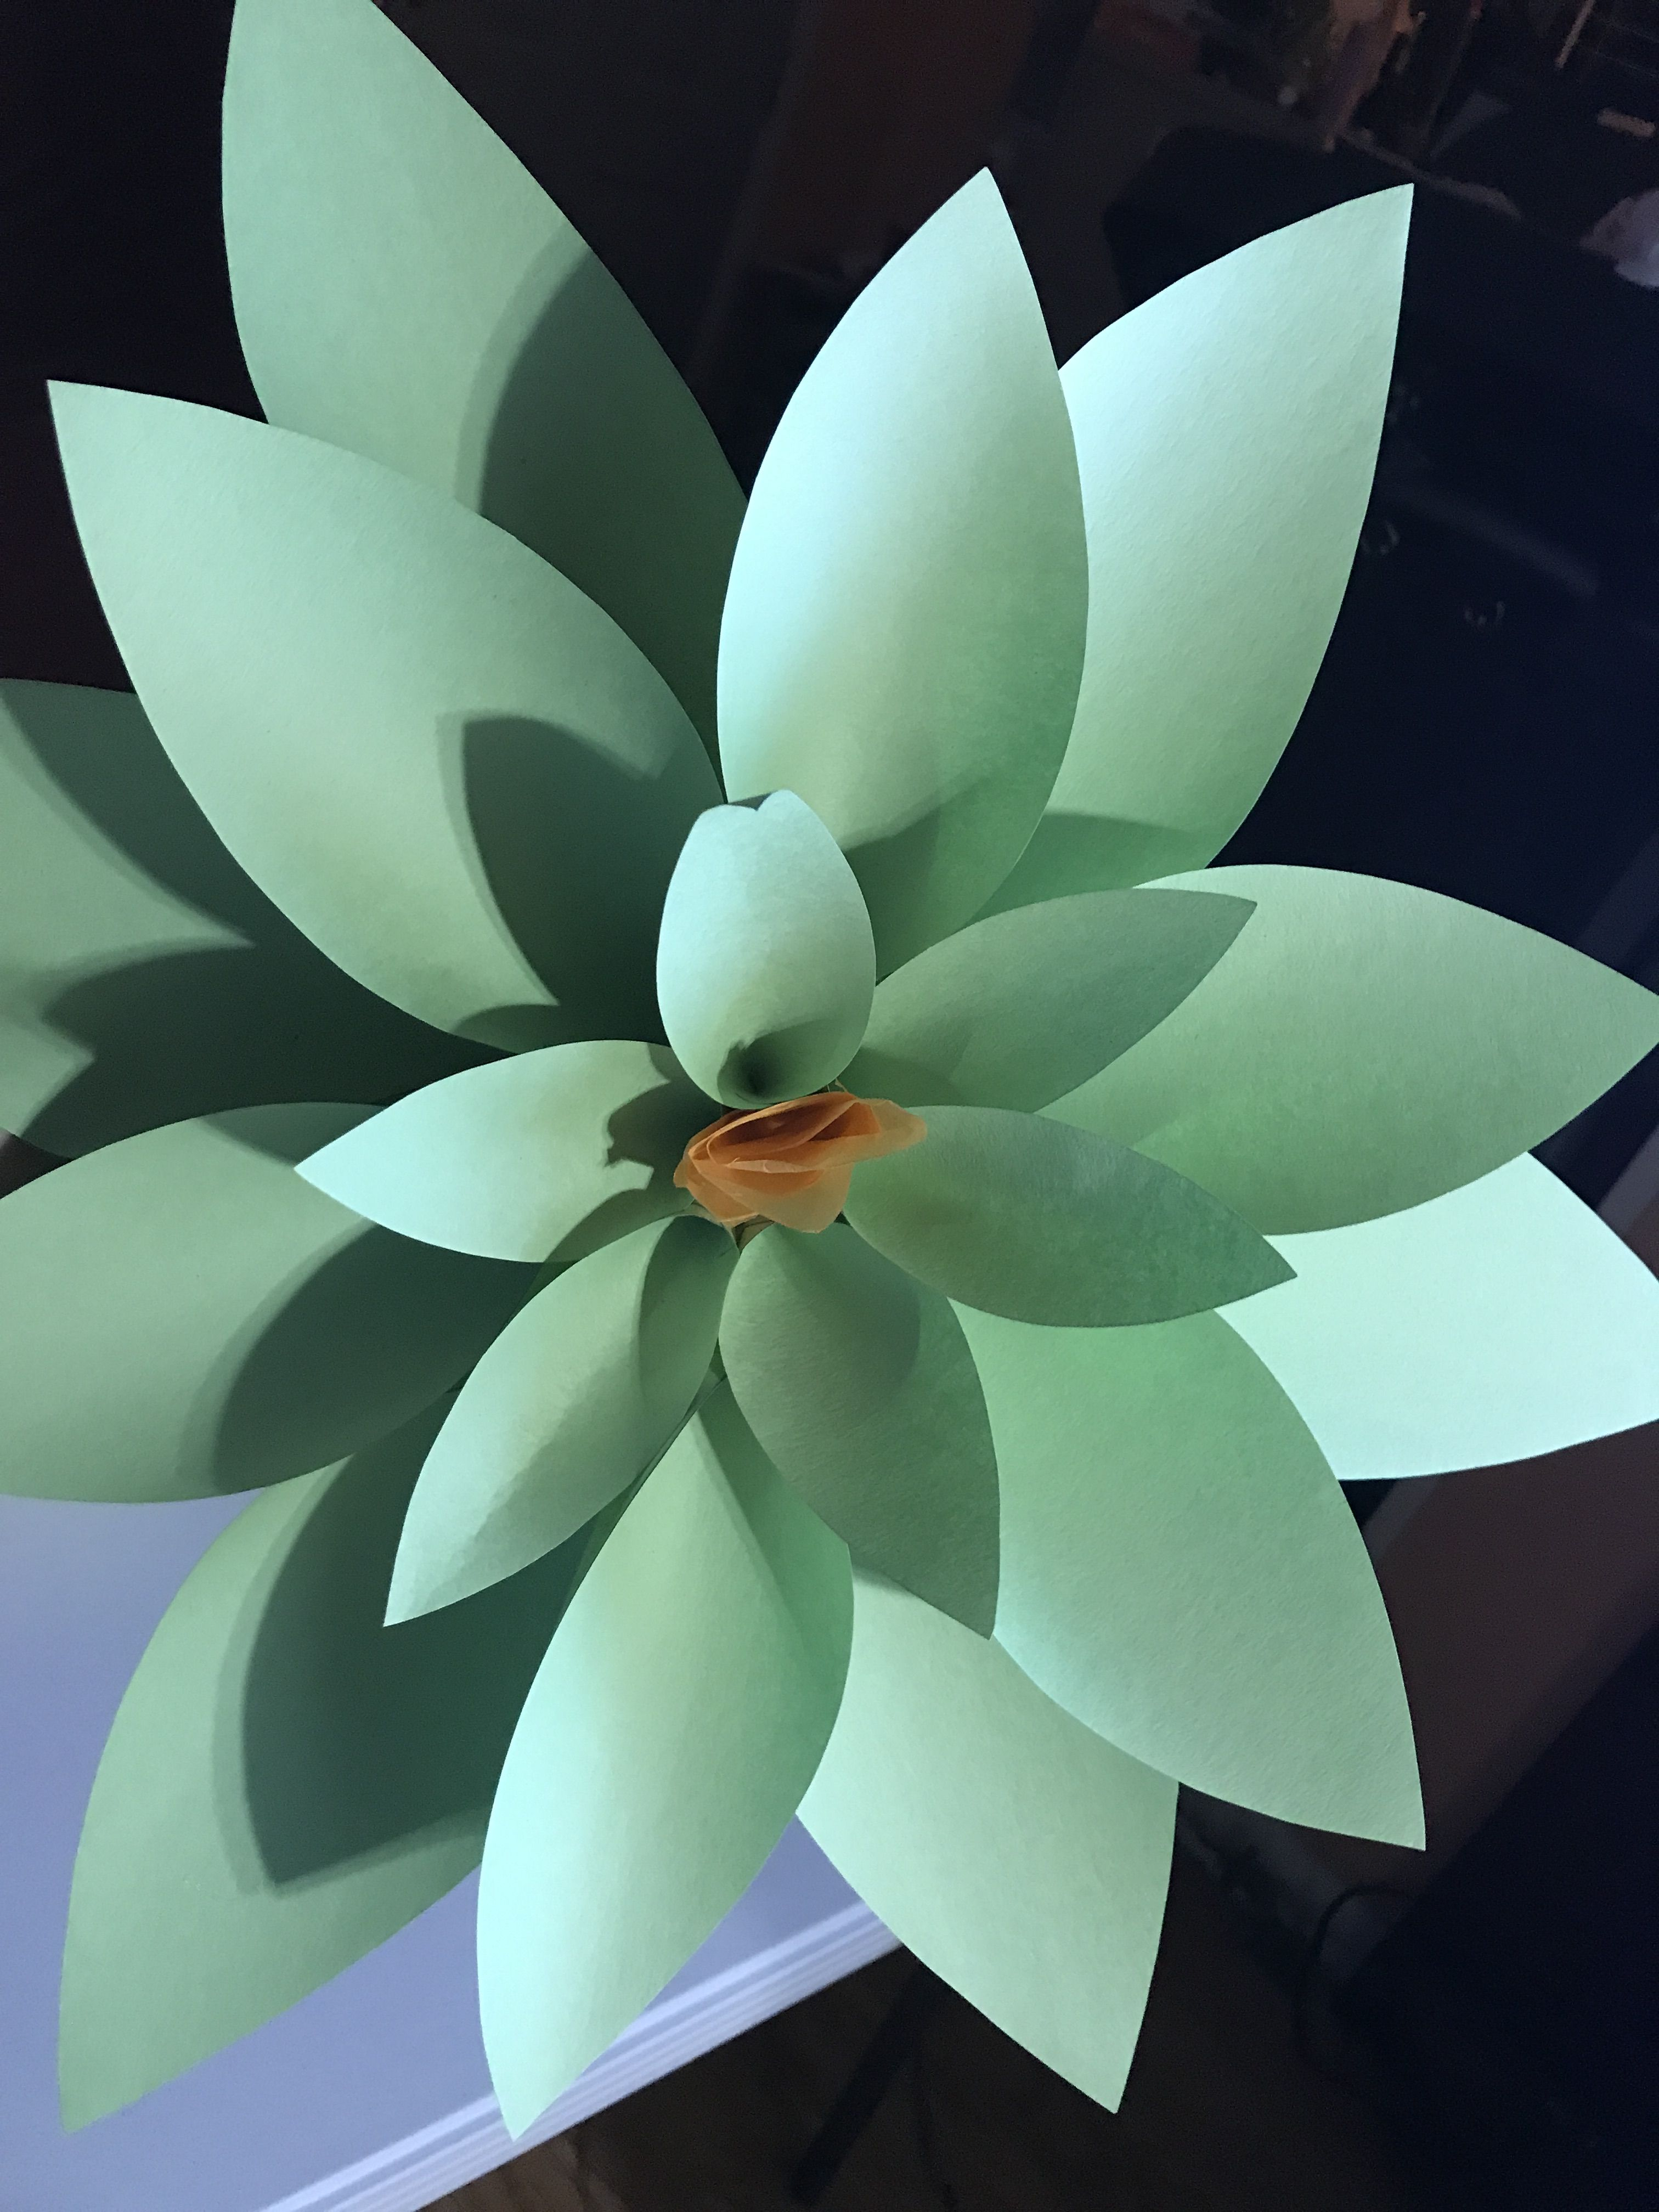 Paper flower made out of construction paper 18 petals hobby paper flower made out of construction paper 18 petals mightylinksfo